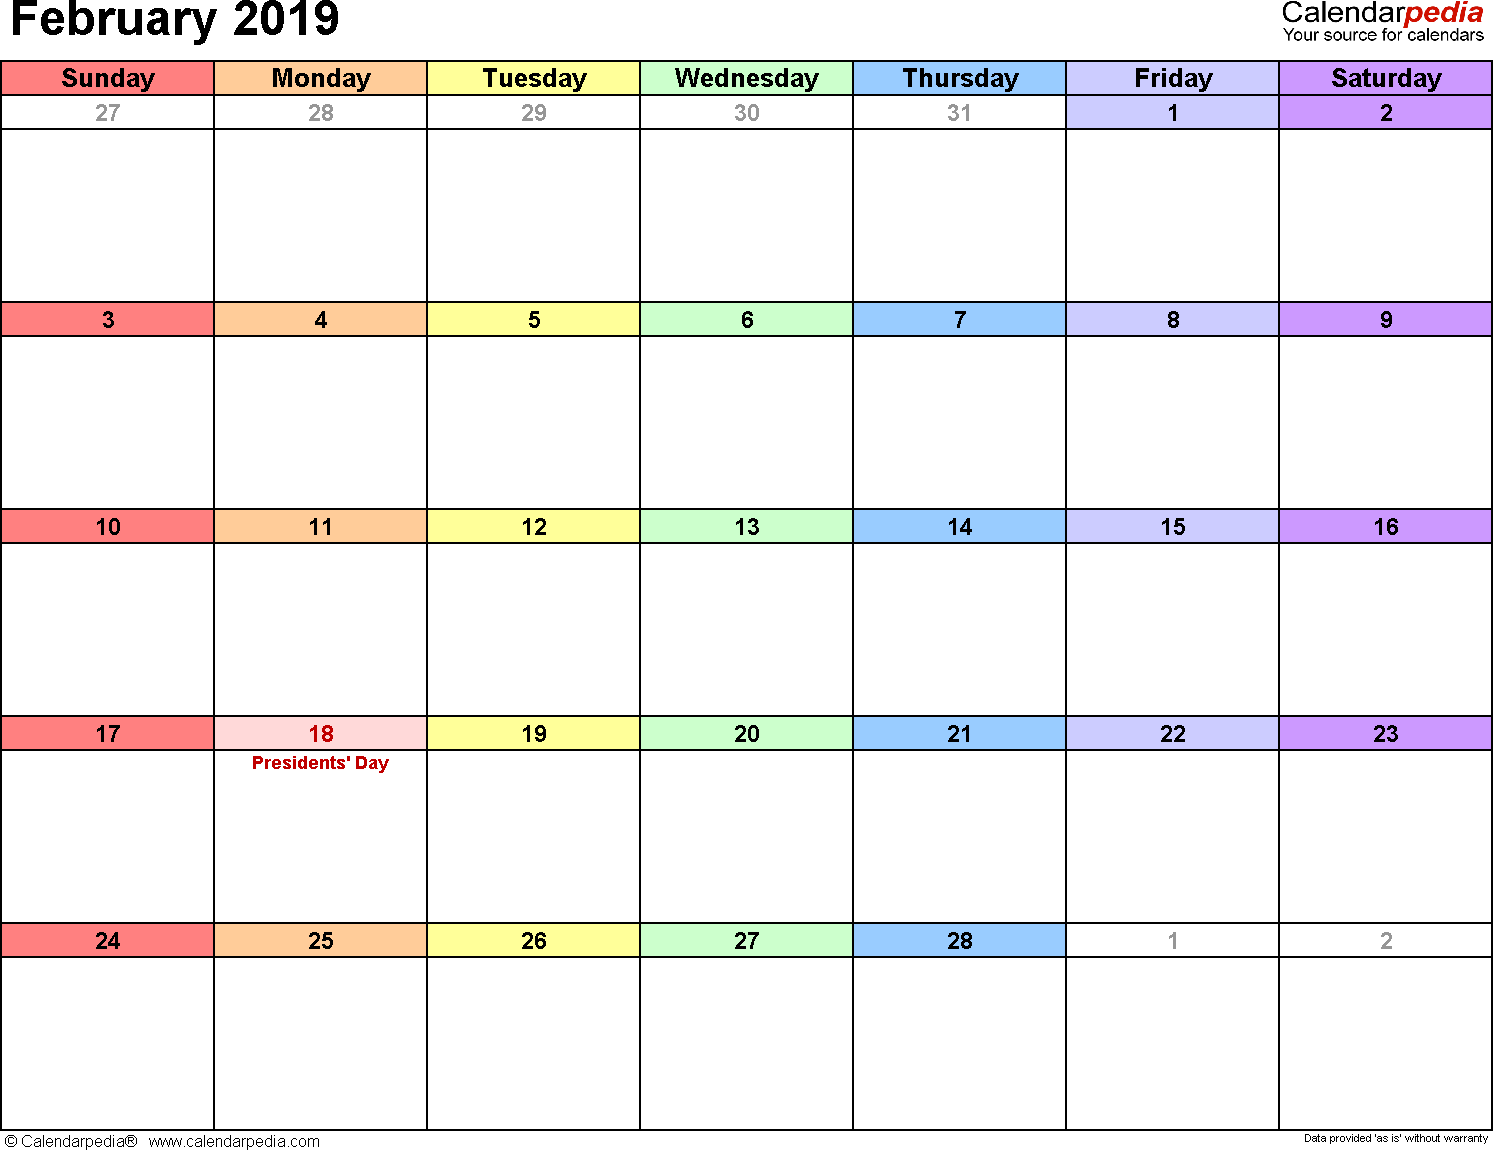 February Calendar Templates 2019 February 2019 Calendars for Word, Excel & PDF